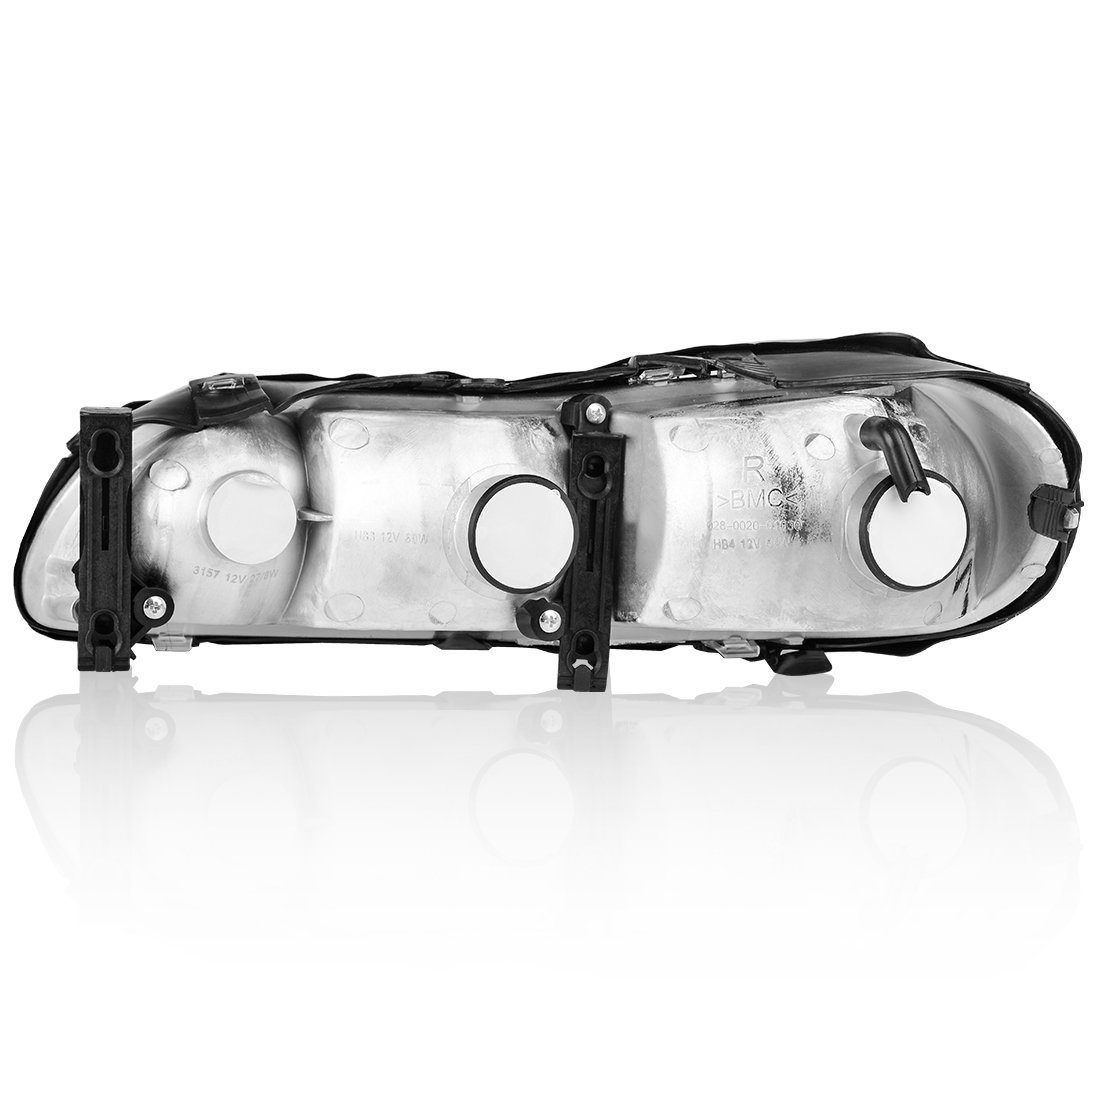 100W Halogen 6 inch Driver side WITH install kit -Black 2006 Union City Body W52 High Corner mount spotlight